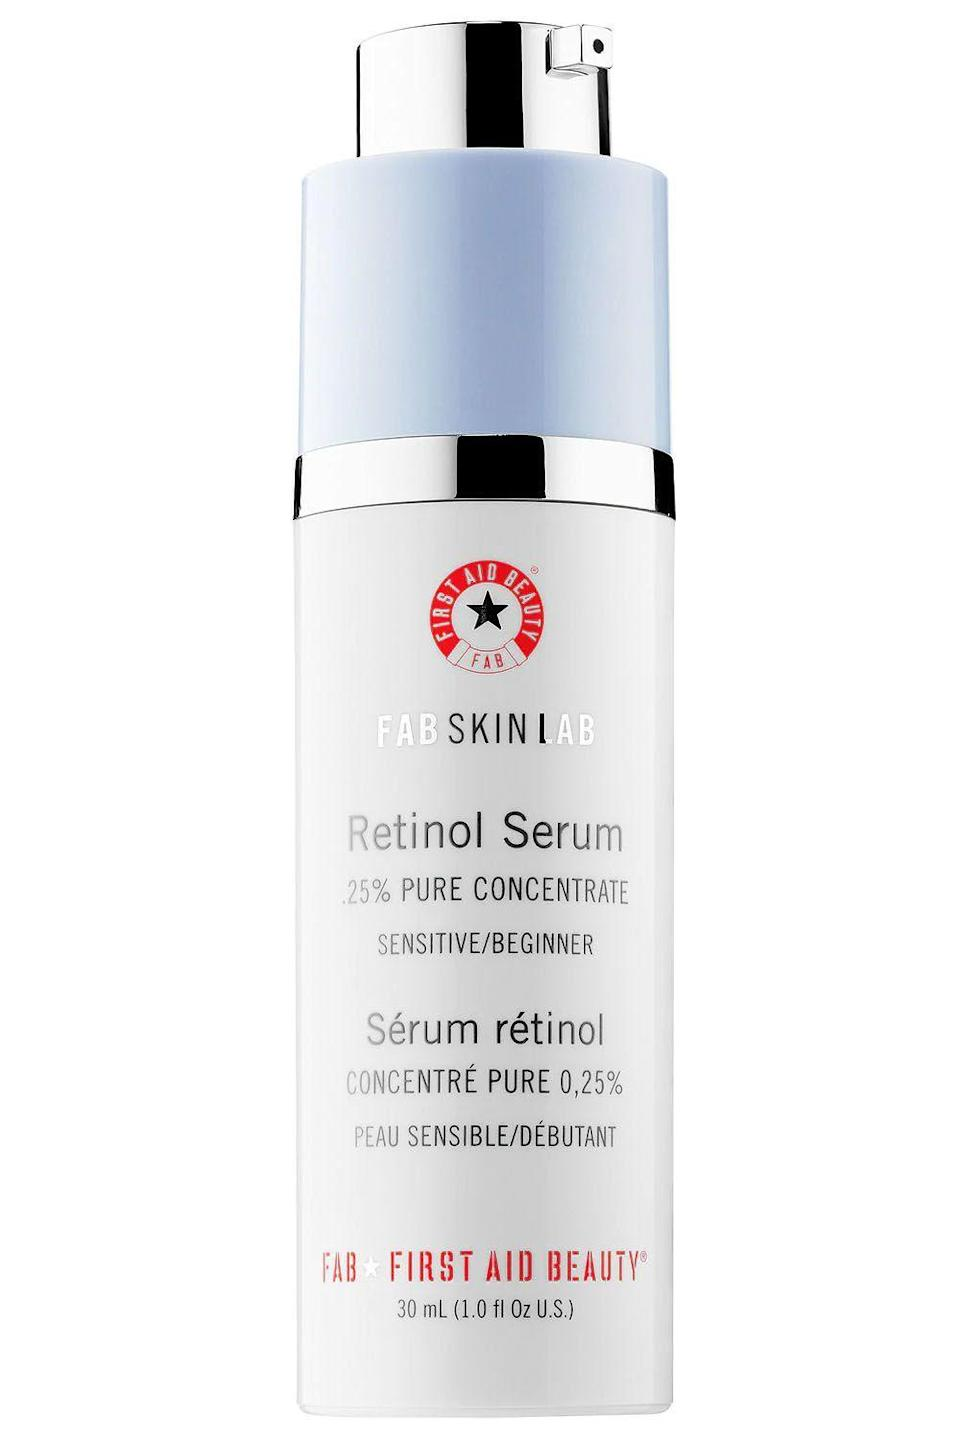 """<p><strong>First Aid Beauty</strong></p><p>sephora.com</p><p><strong>$58.00</strong></p><p><a href=""""https://go.redirectingat.com?id=74968X1596630&url=https%3A%2F%2Fwww.sephora.com%2Fproduct%2Ffab-skin-lab-retinol-serum-0-25-pure-concentrate-P416825&sref=https%3A%2F%2Fwww.cosmopolitan.com%2Fstyle-beauty%2Fbeauty%2Fg32934142%2Fbest-acne-serums%2F"""" rel=""""nofollow noopener"""" target=""""_blank"""" data-ylk=""""slk:Shop Now"""" class=""""link rapid-noclick-resp"""">Shop Now</a></p><p>If you don't have a <a href=""""https://www.cosmopolitan.com/style-beauty/beauty/g25837230/retinol-face-cream/"""" rel=""""nofollow noopener"""" target=""""_blank"""" data-ylk=""""slk:retinol"""" class=""""link rapid-noclick-resp"""">retinol</a> in your skincare routine, WYD? No, seriously—it's the one ingredient that derms swear by when it comes to anti-aging and acne. It speeds up cell turnover (to help fade fine lines and wrinkles), <strong>r</strong><strong>educes oil production, and calms inflammation</strong>. What's not to love?</p>"""